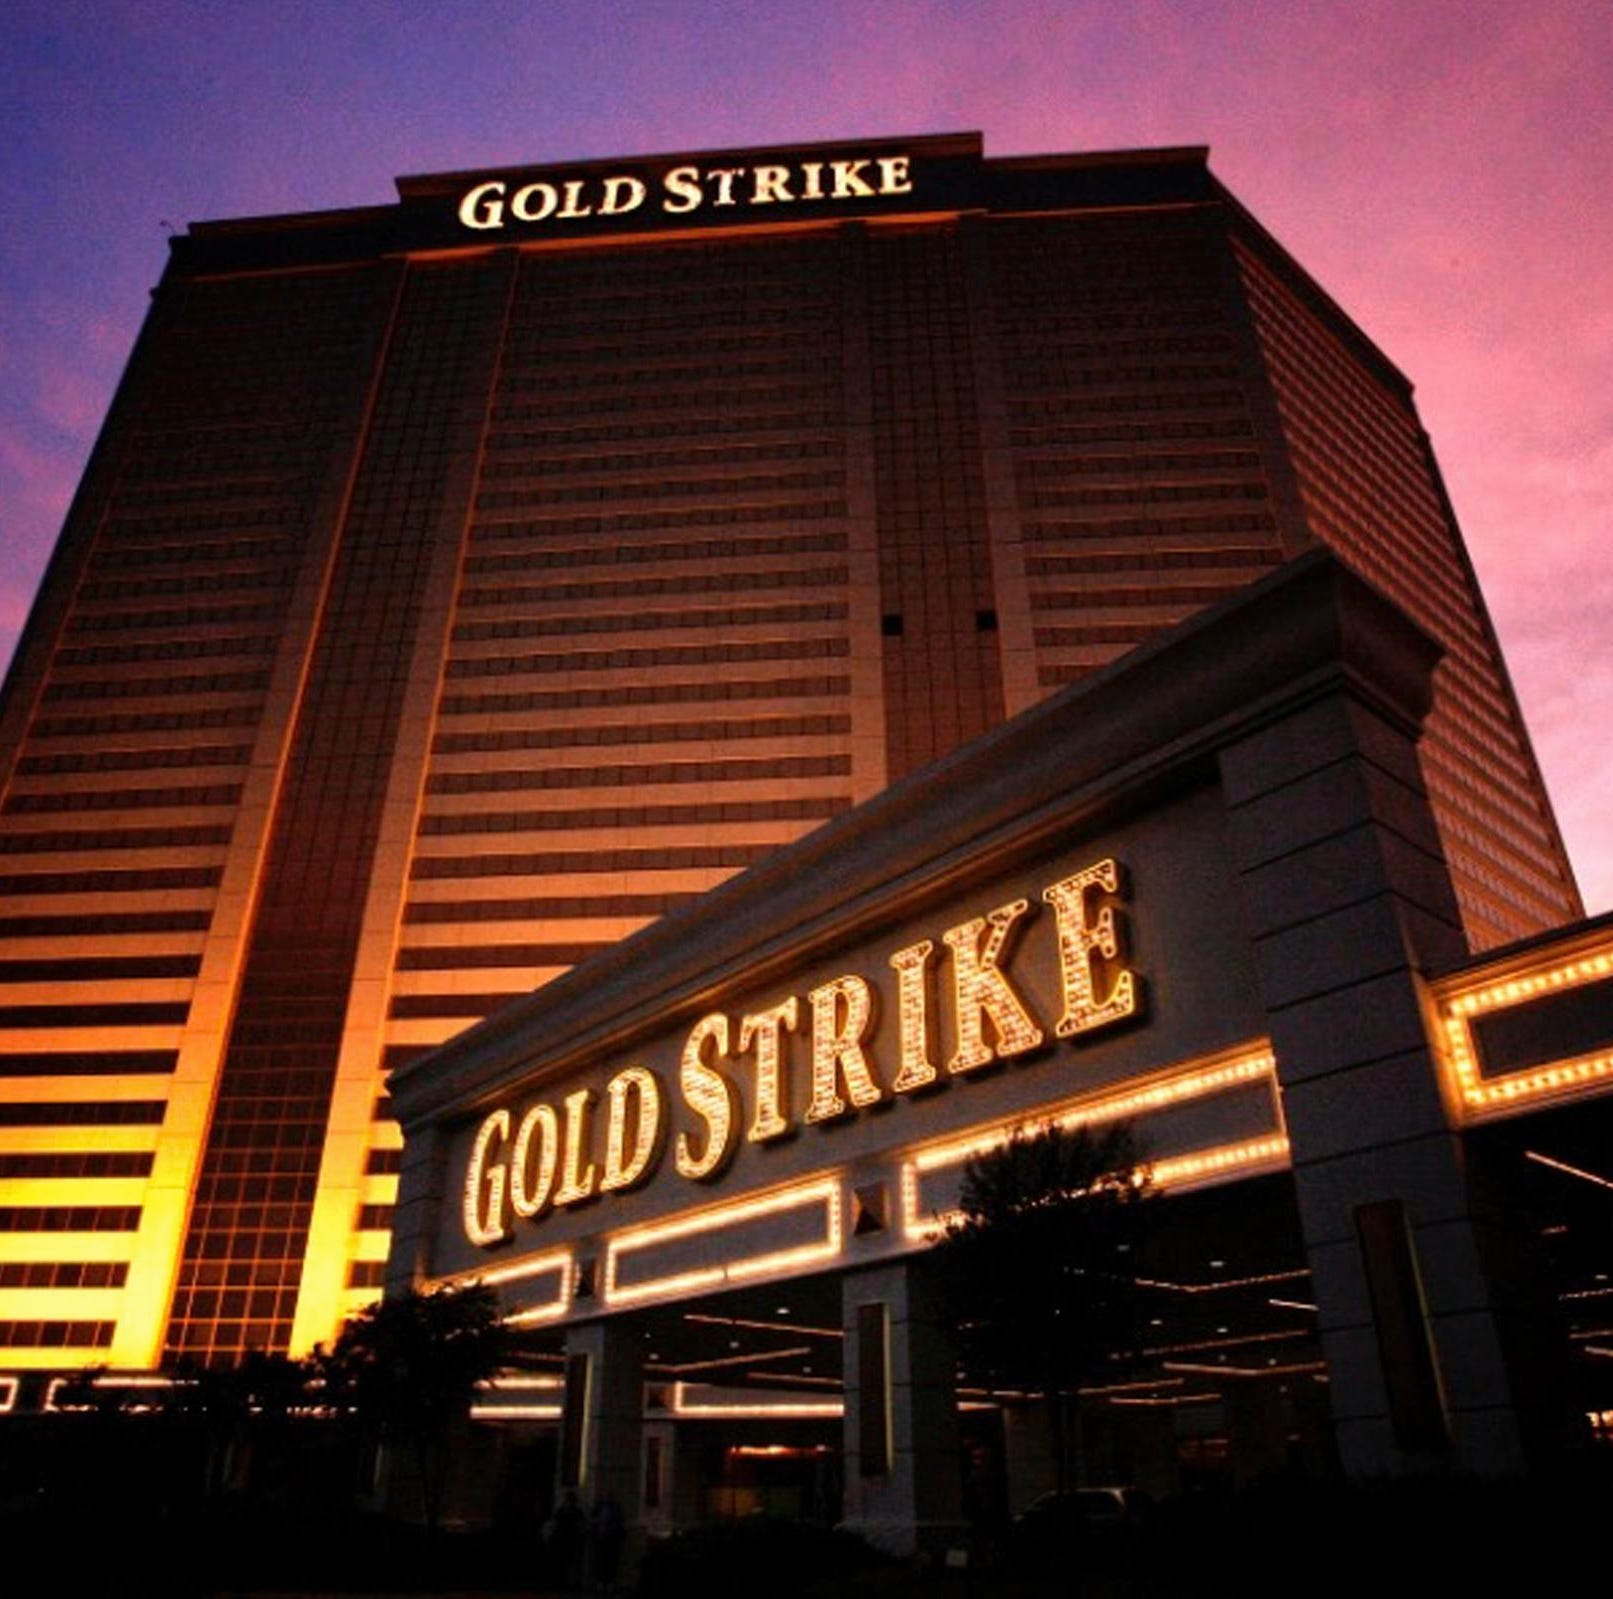 Evanoff: Gold Strike casino's sports bar will contain 50 TVs, take sports bets from diners